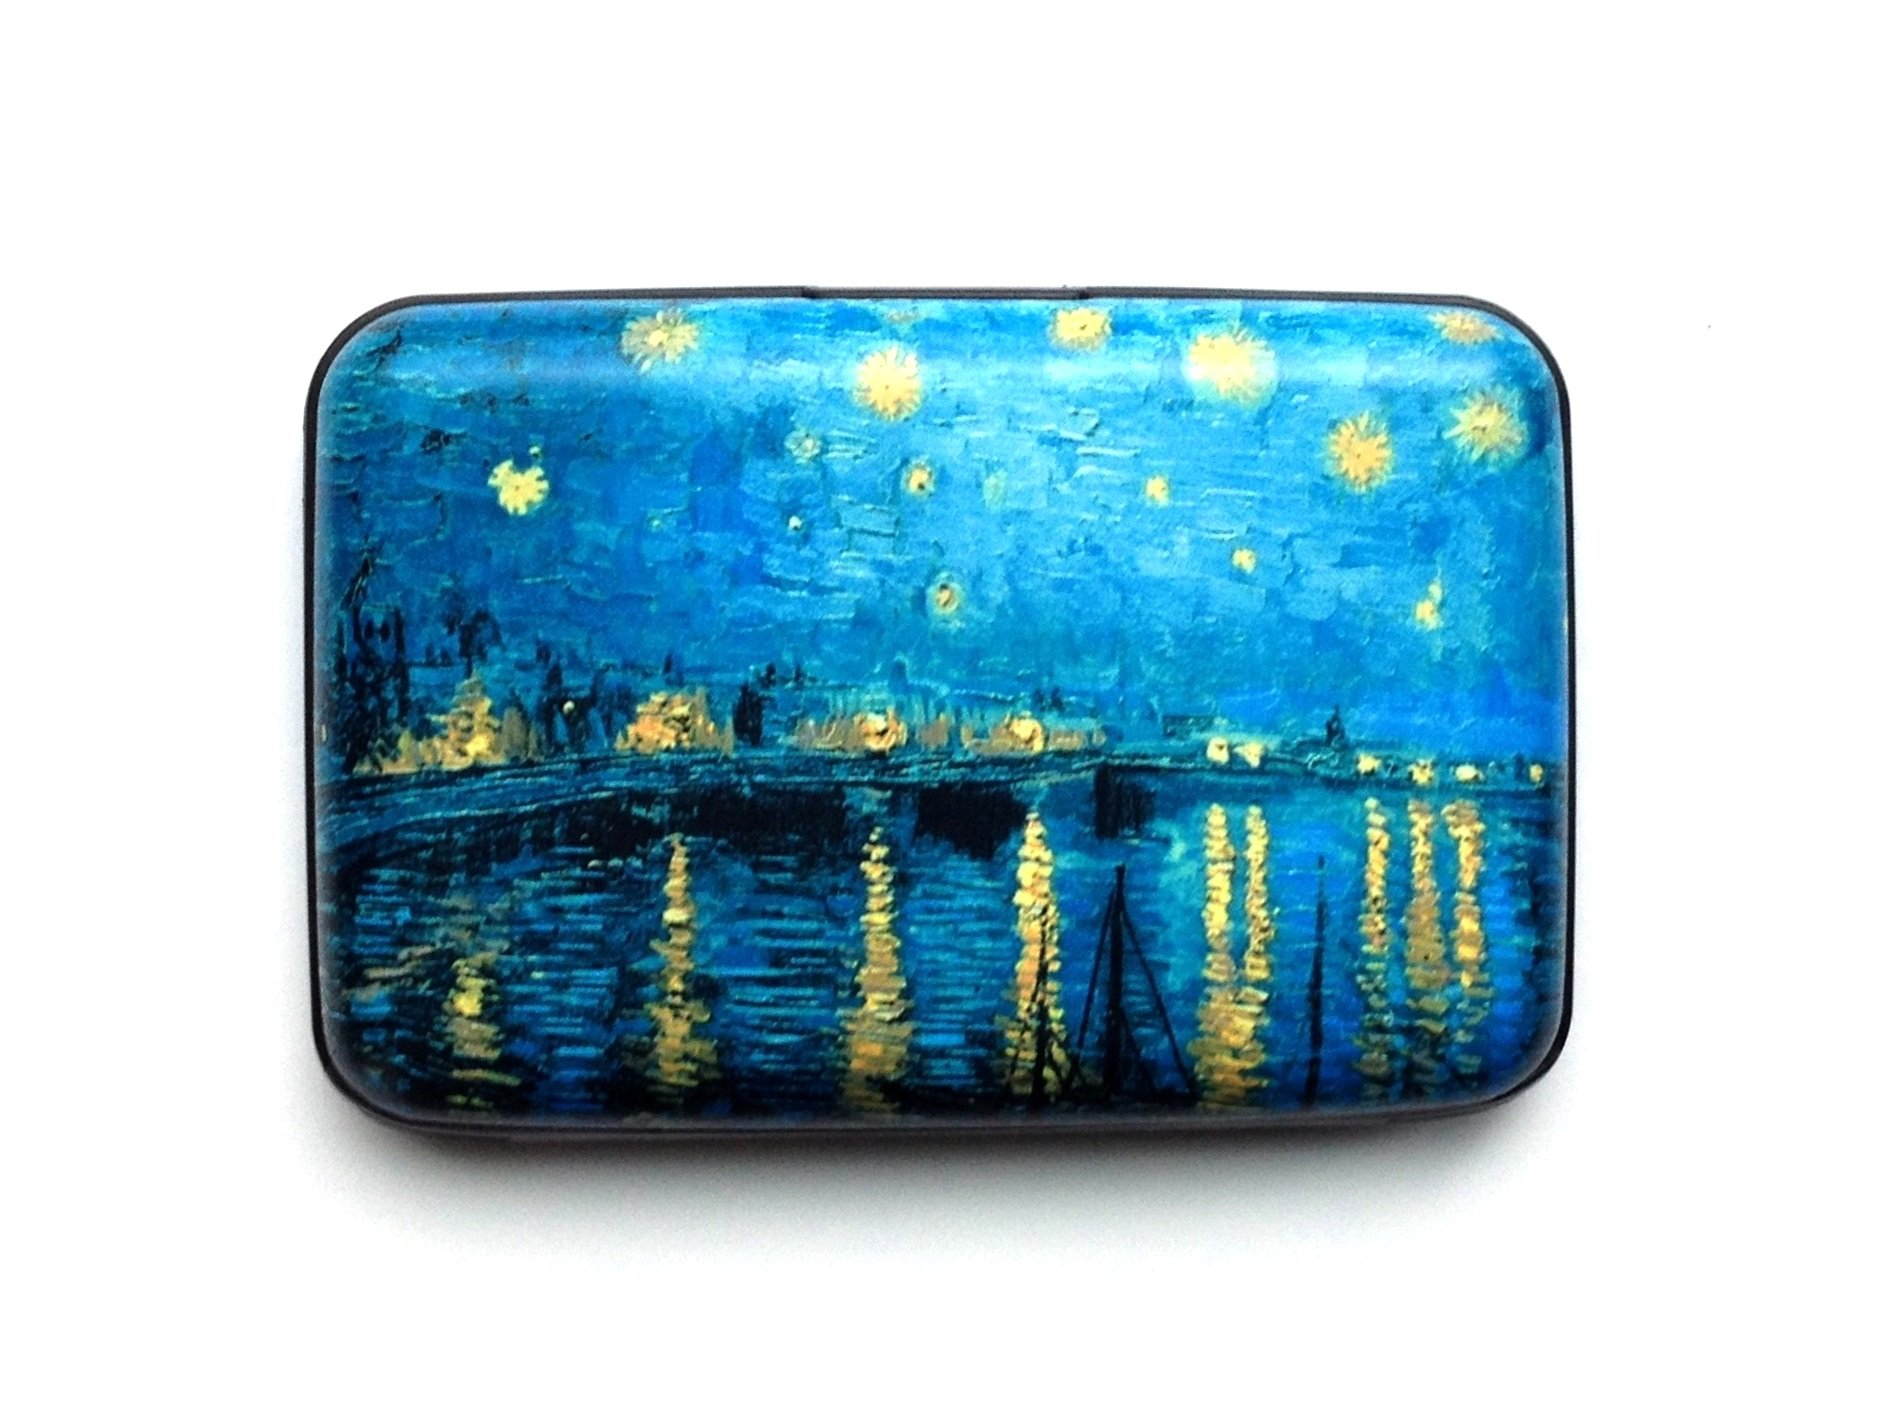 Credit Card Case (Armor Wallet)''Starry Night Over the Rhone River''